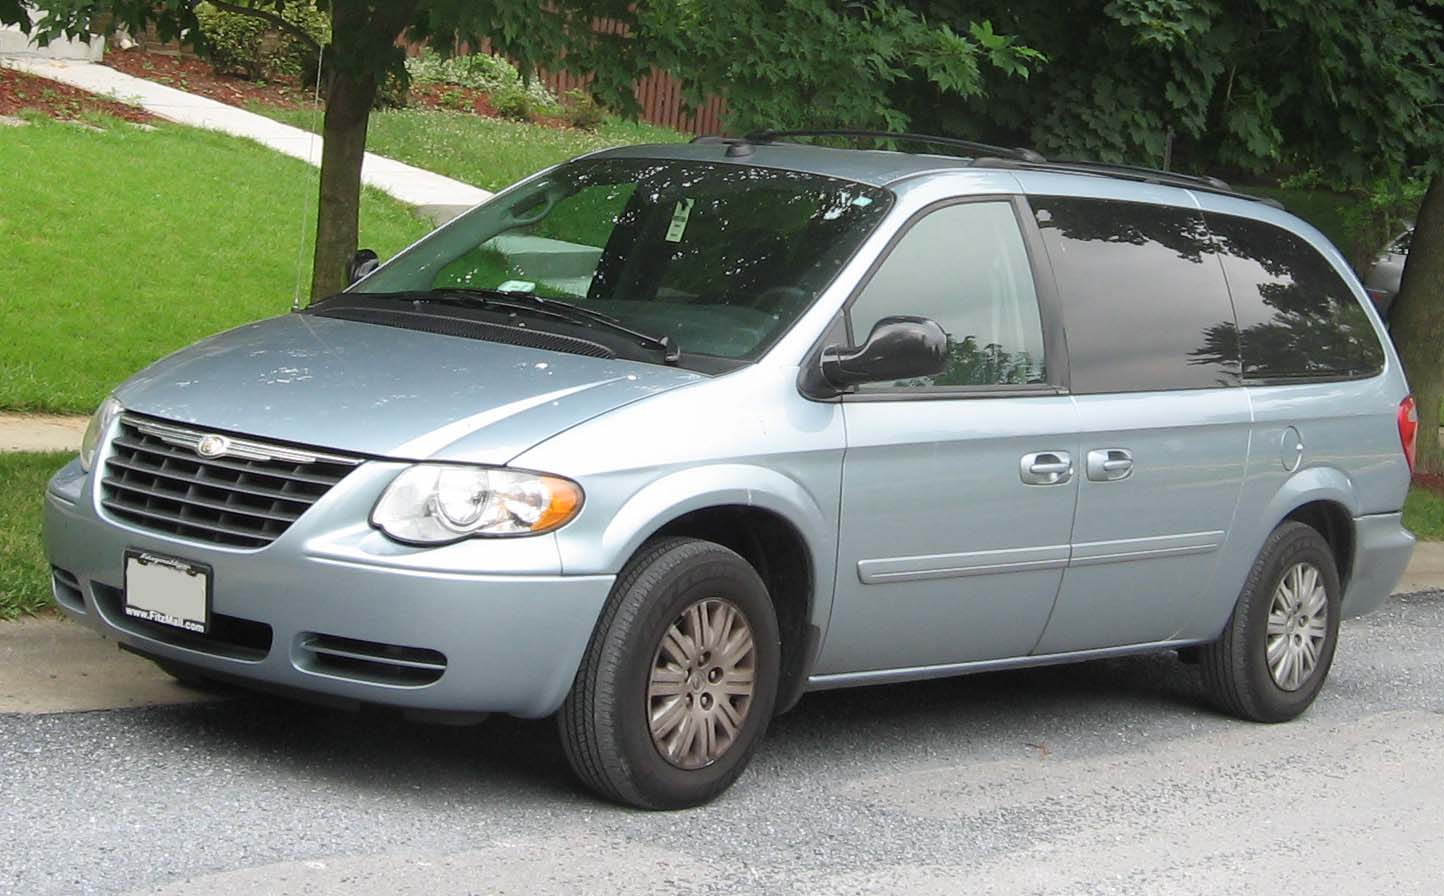 2007 chrysler town and country information and photos momentcar. Black Bedroom Furniture Sets. Home Design Ideas